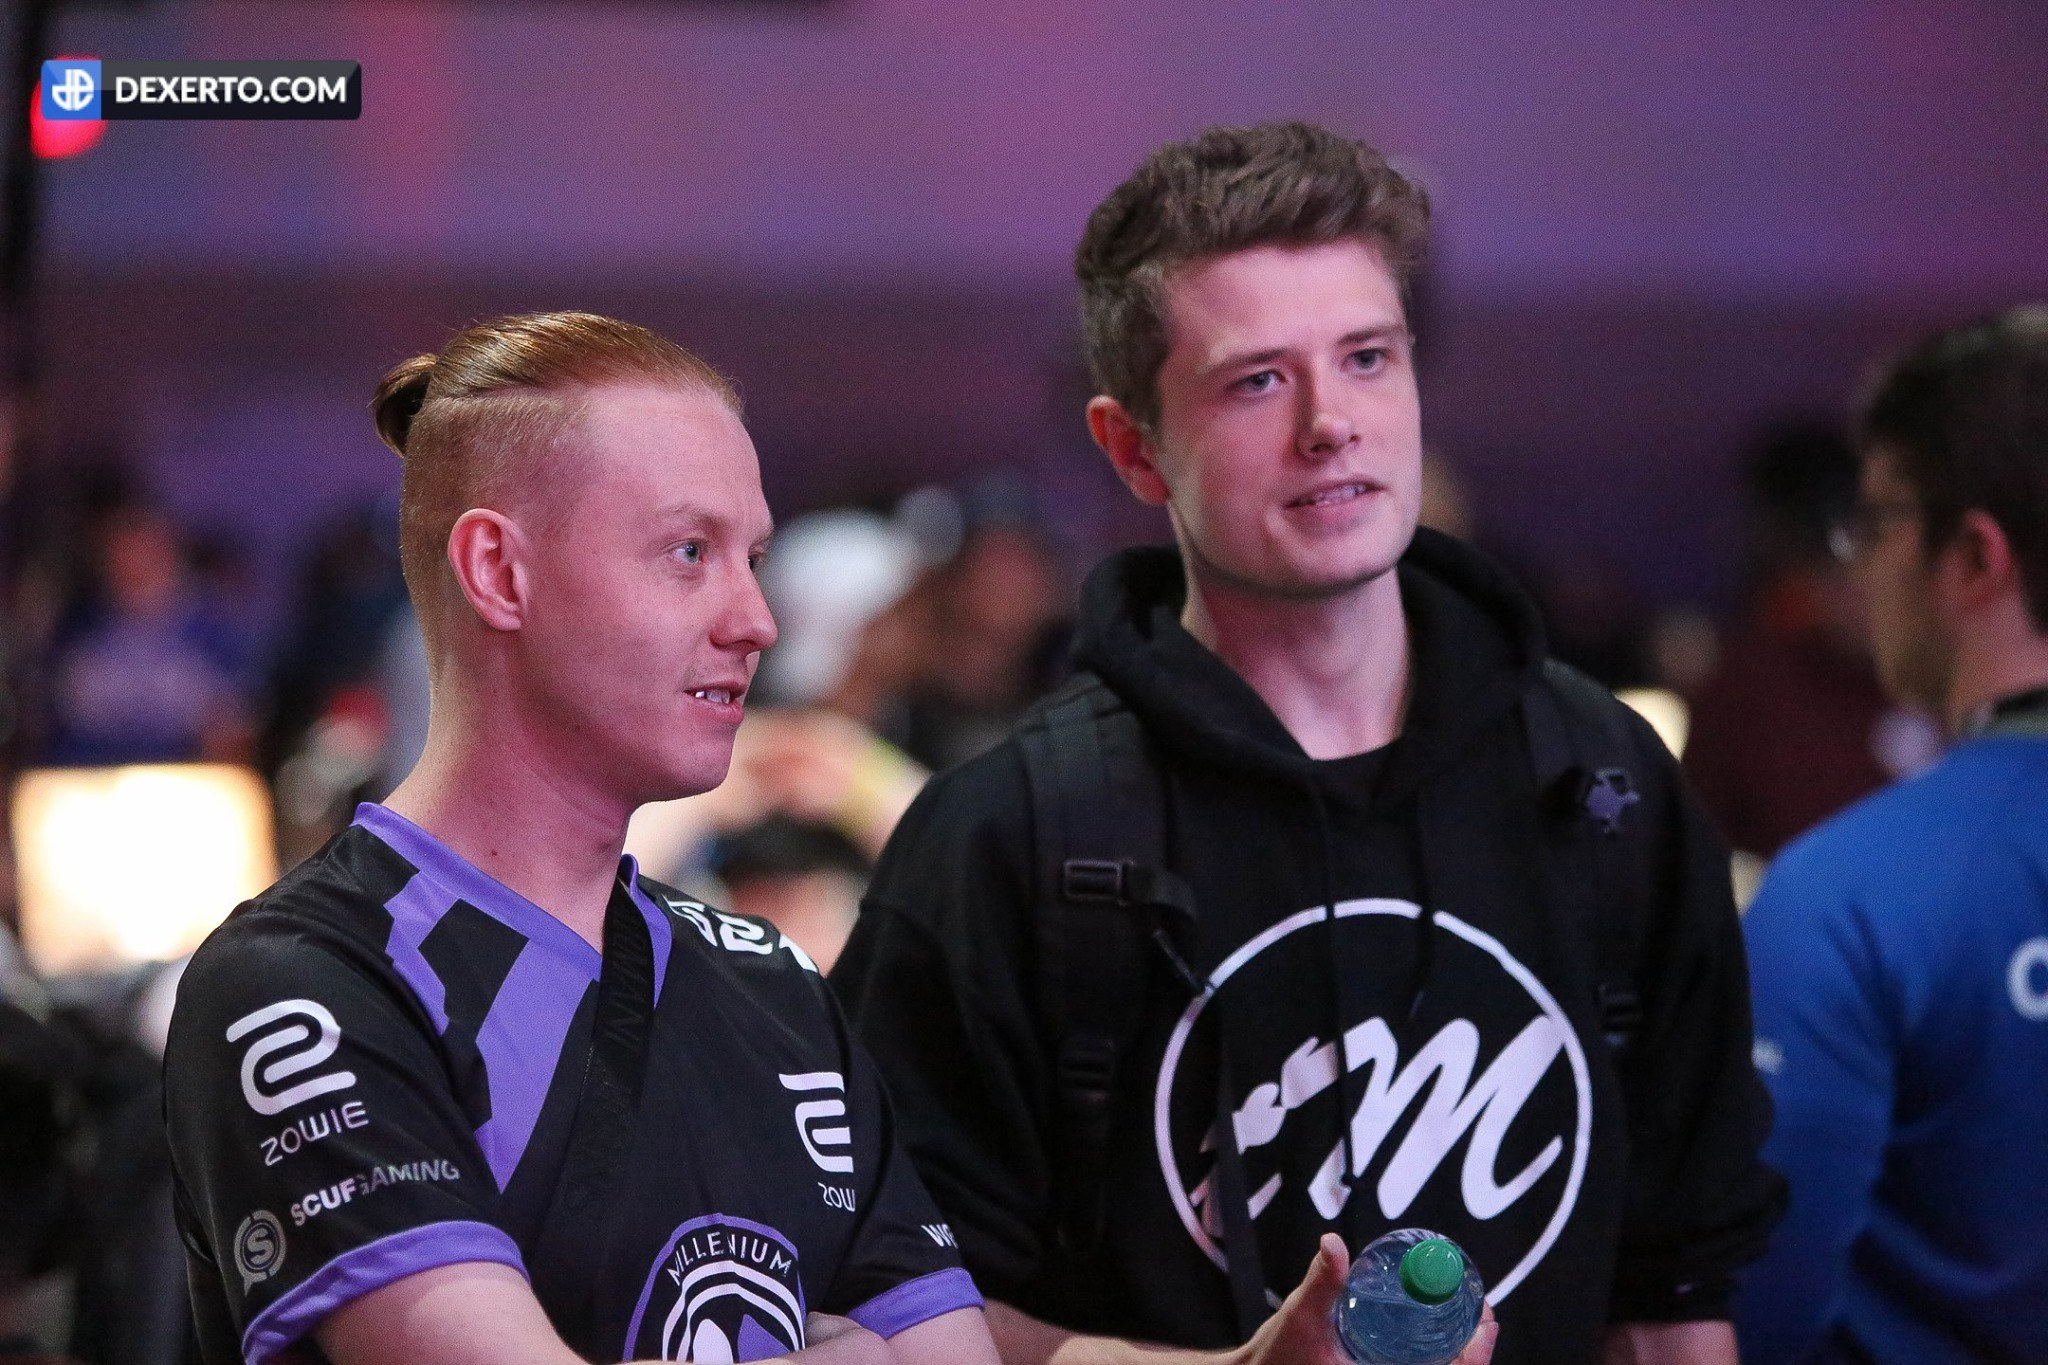 Denz (right) representing Tainted Minds during IW